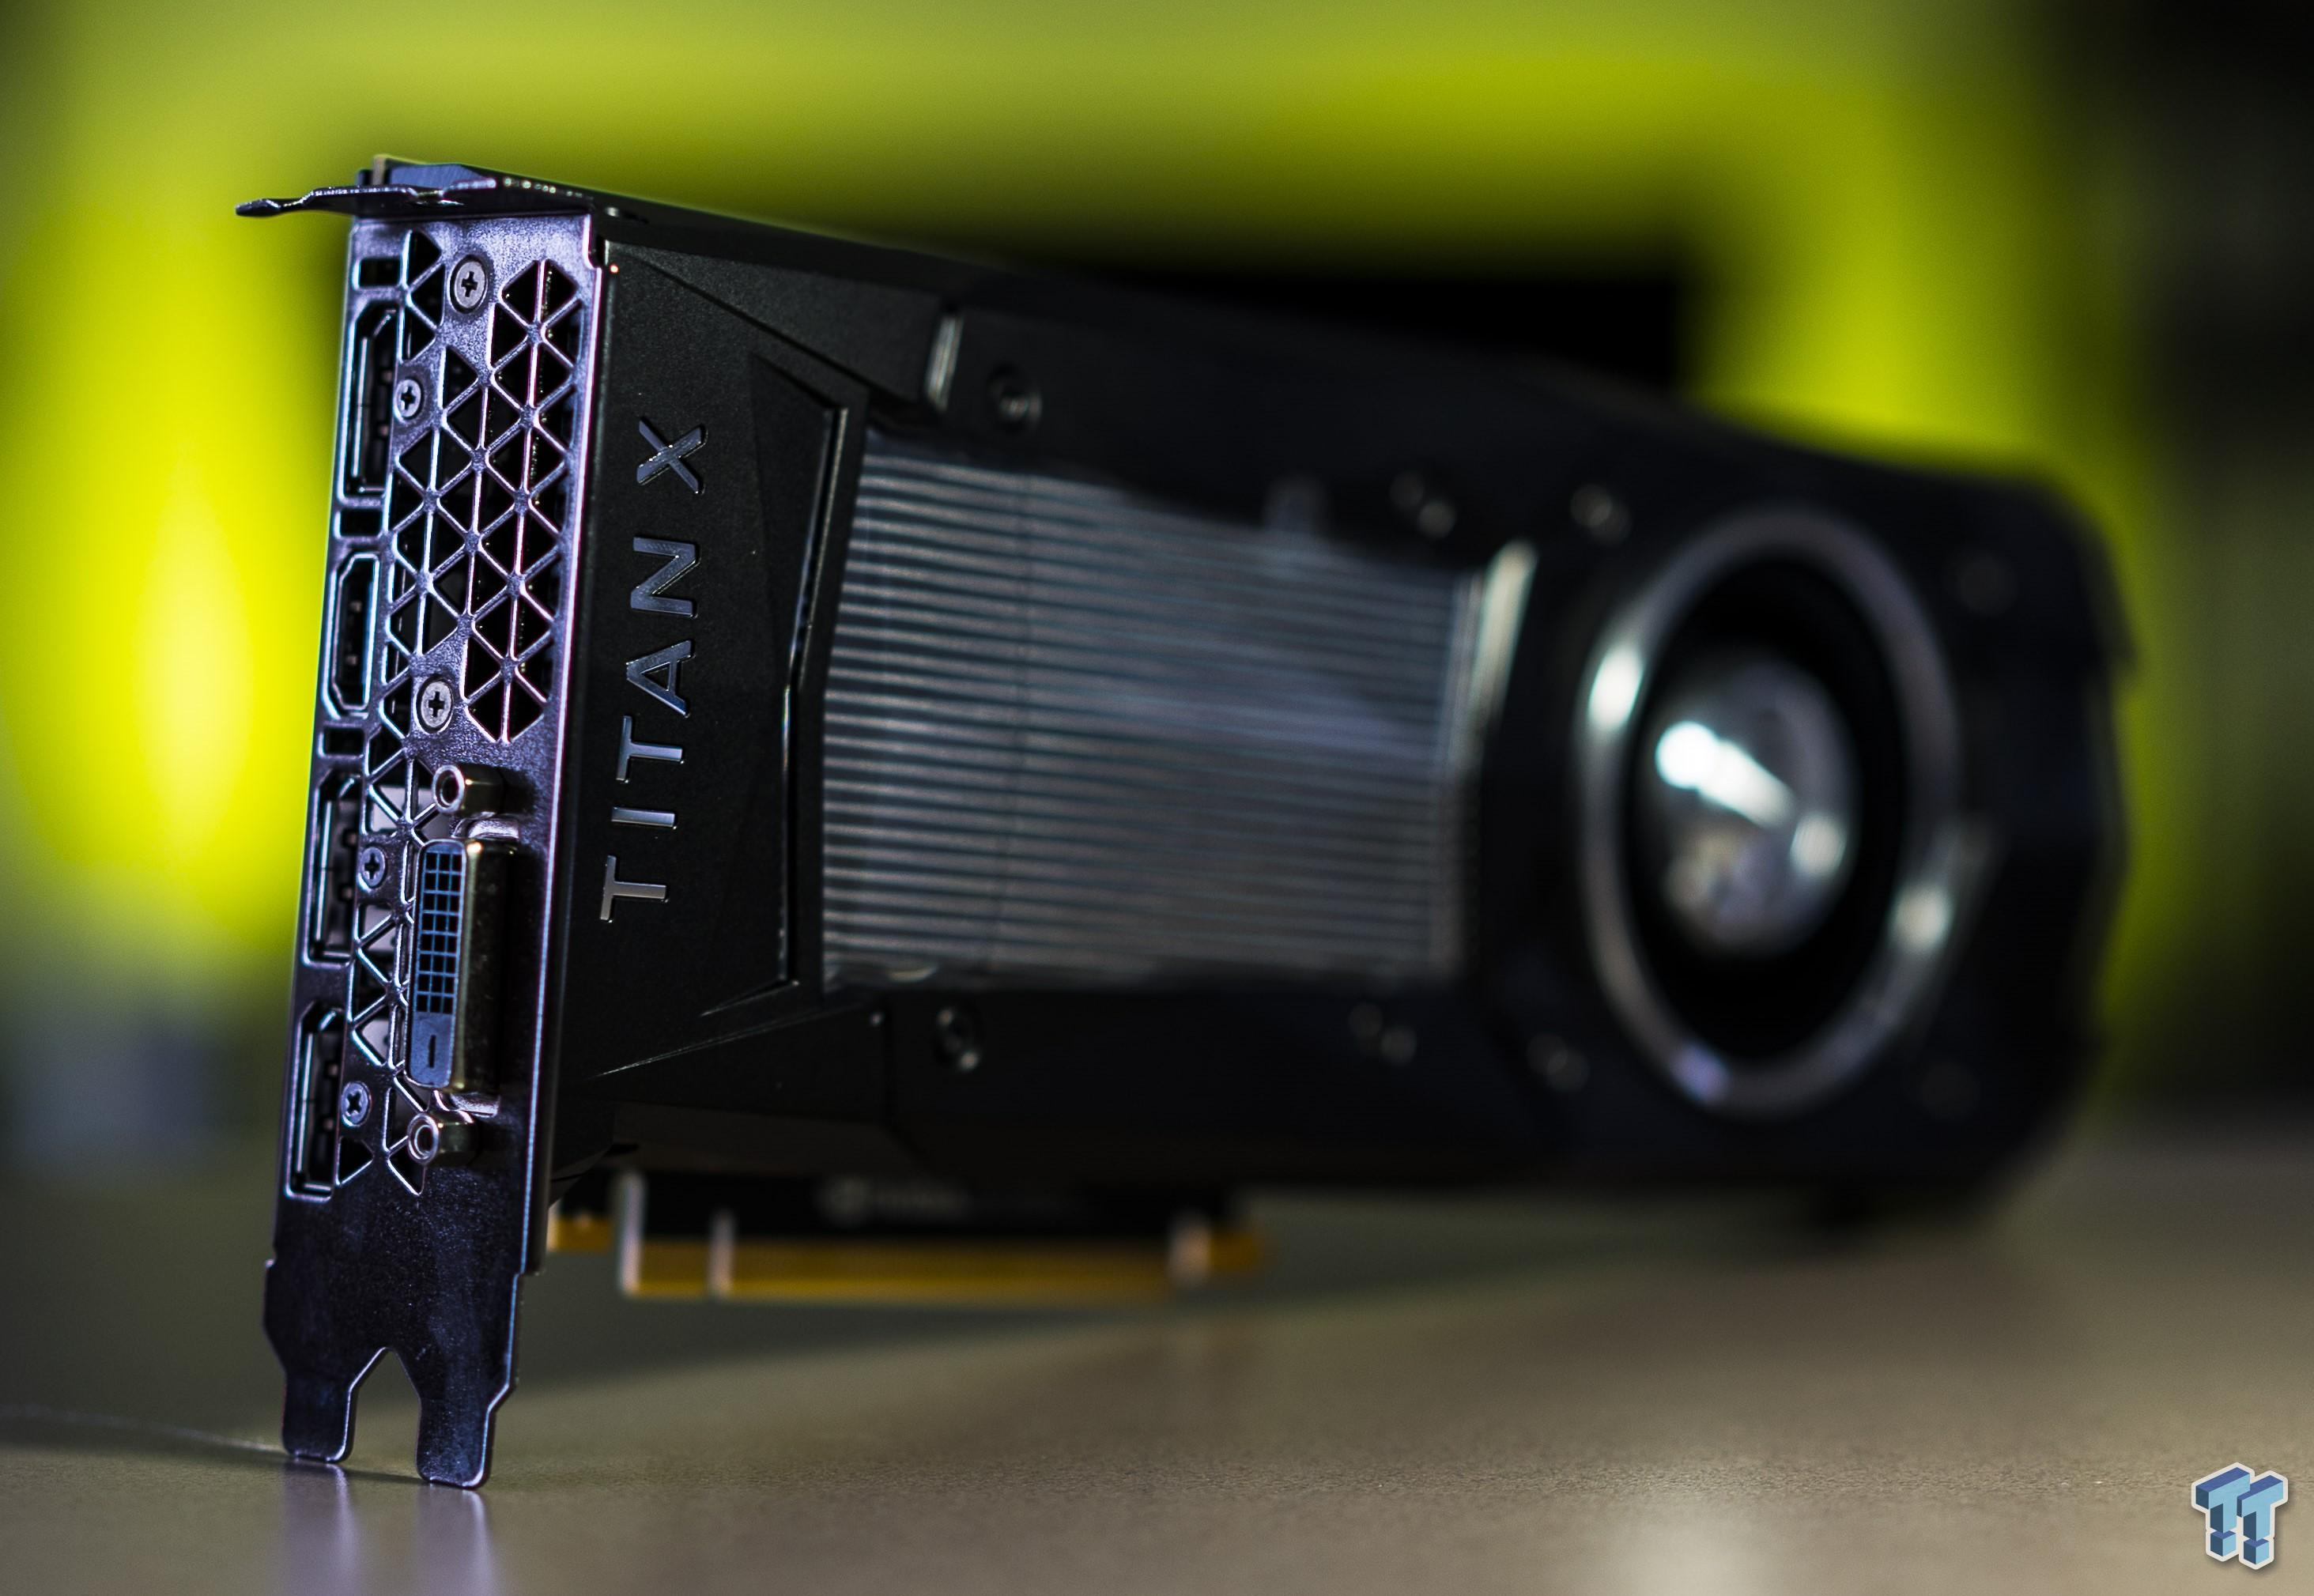 NVIDIA Titan X Review - Monster Performance: 4K 60FPS On A